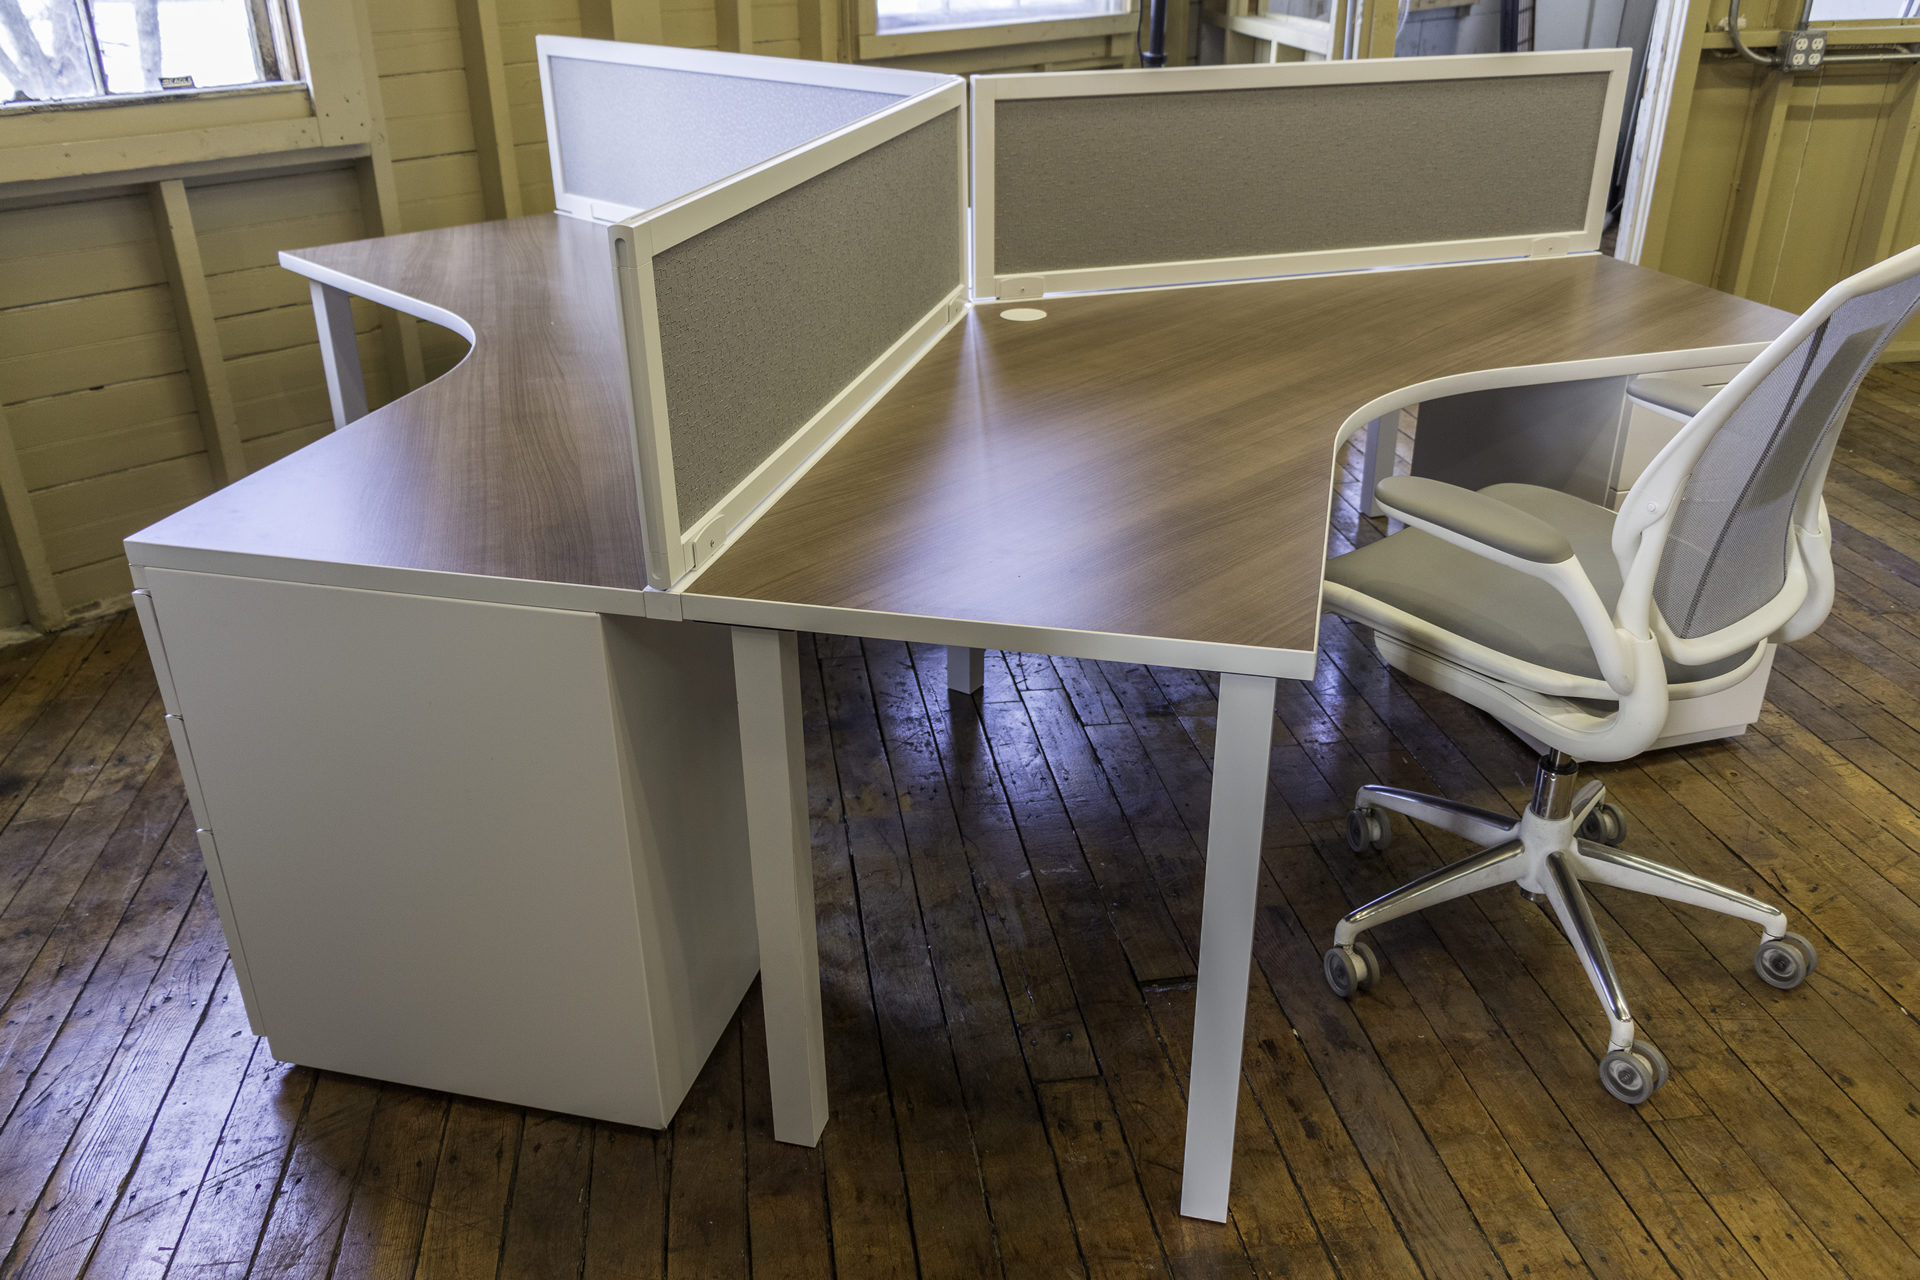 peartreeofficefurniture_peartreeofficefurniture_peartreeofficefurniture_new-peartree-custom-3-pod-workstations-3.jpg